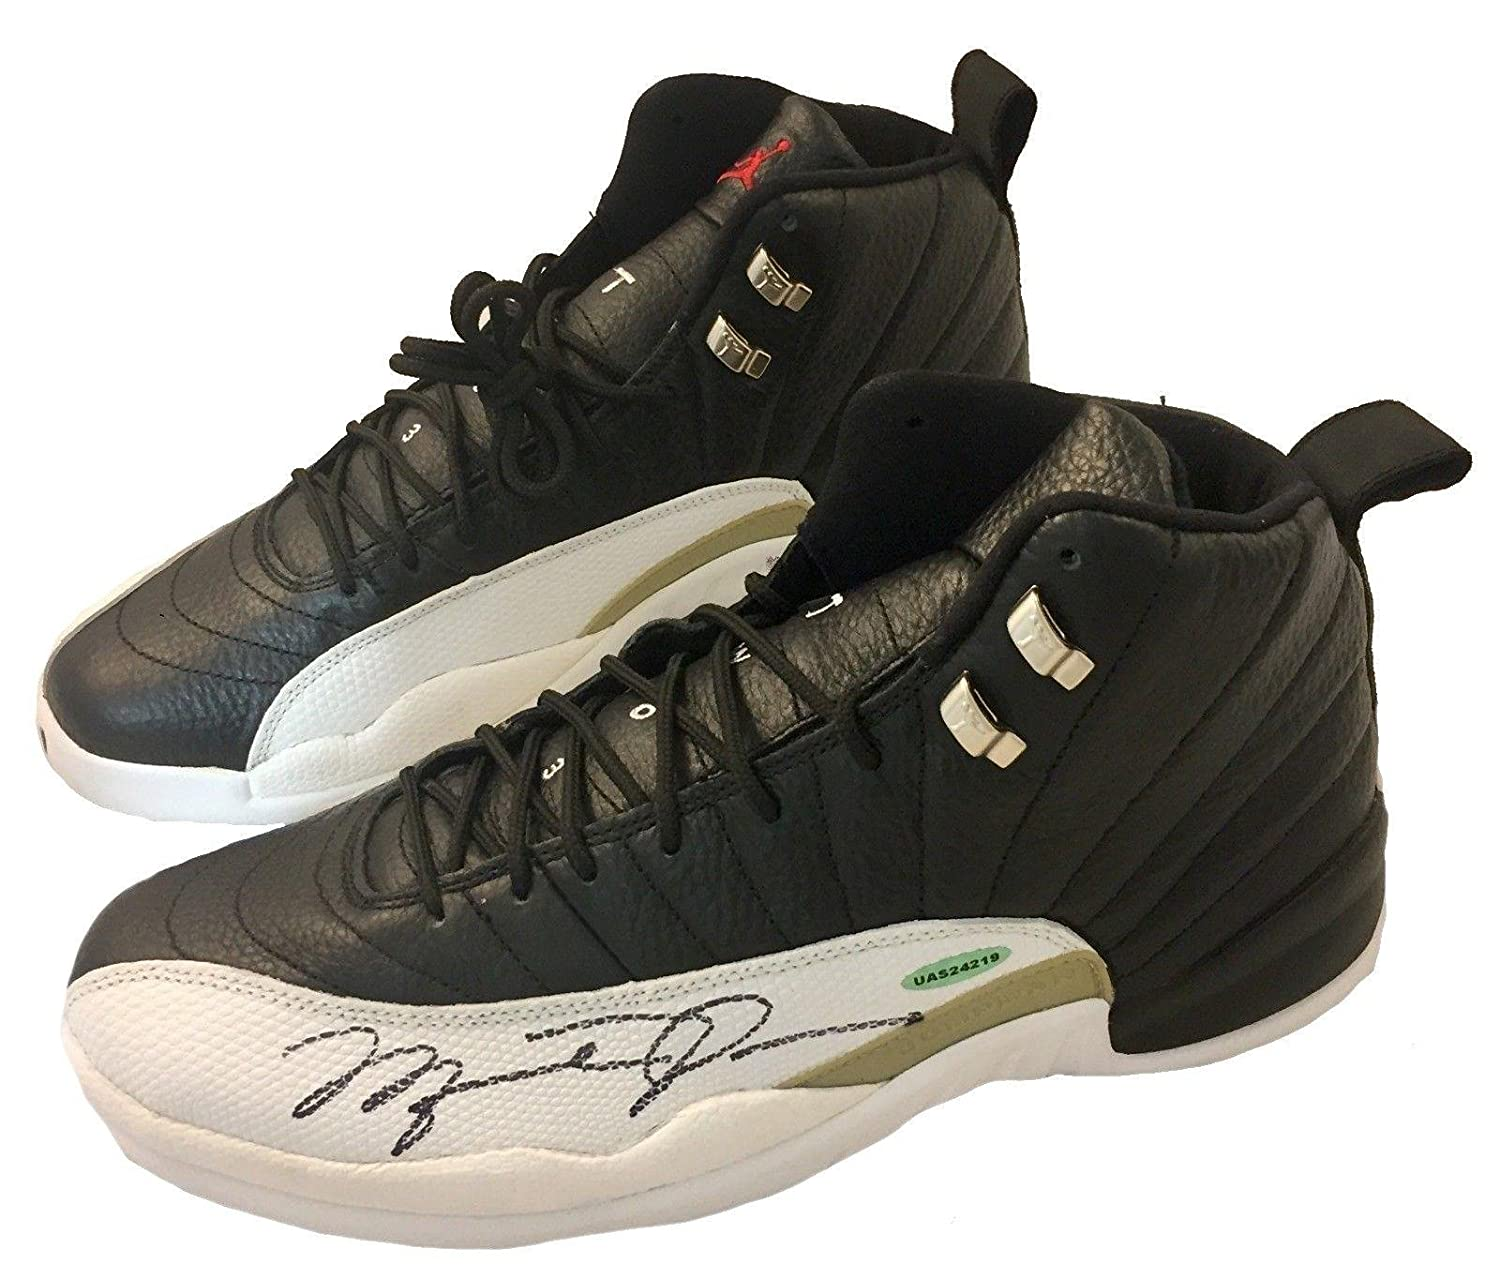 huge selection of edf70 36413 Michael Jordan Autographed Air Jordan 12 Shoes Authenticated UAS24219 -  Upper Deck Certified - Autographed NBA Sneakers at Amazon s Sports  Collectibles ...